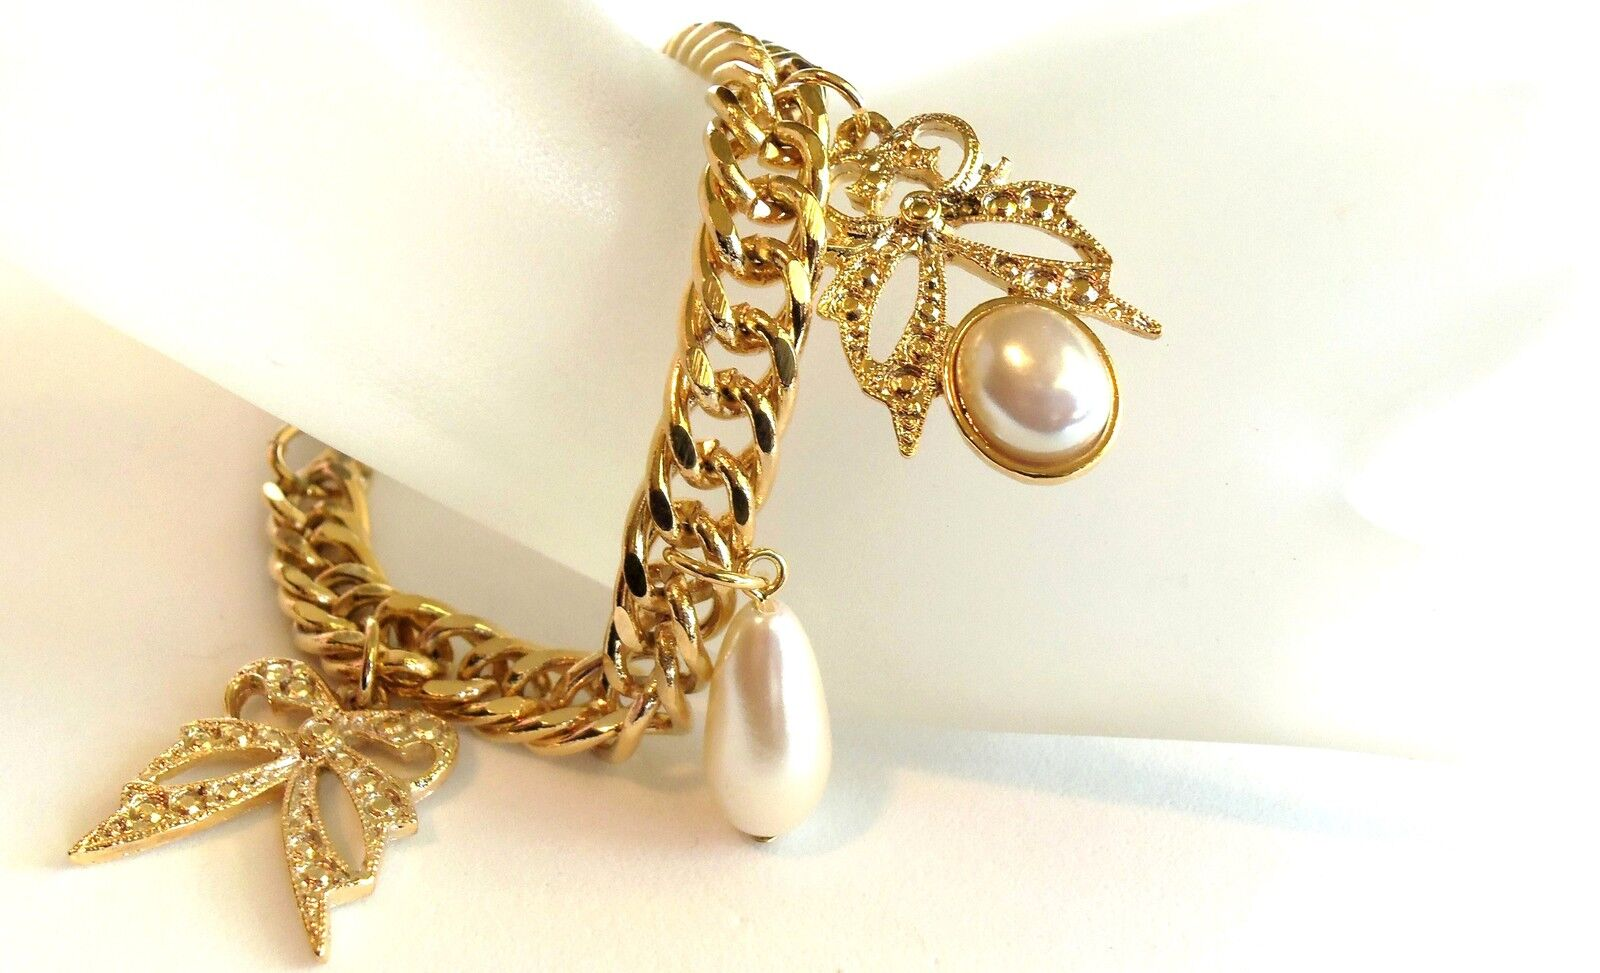 Vintage Goldplated Butterfly And Pearls Charm Bracelet